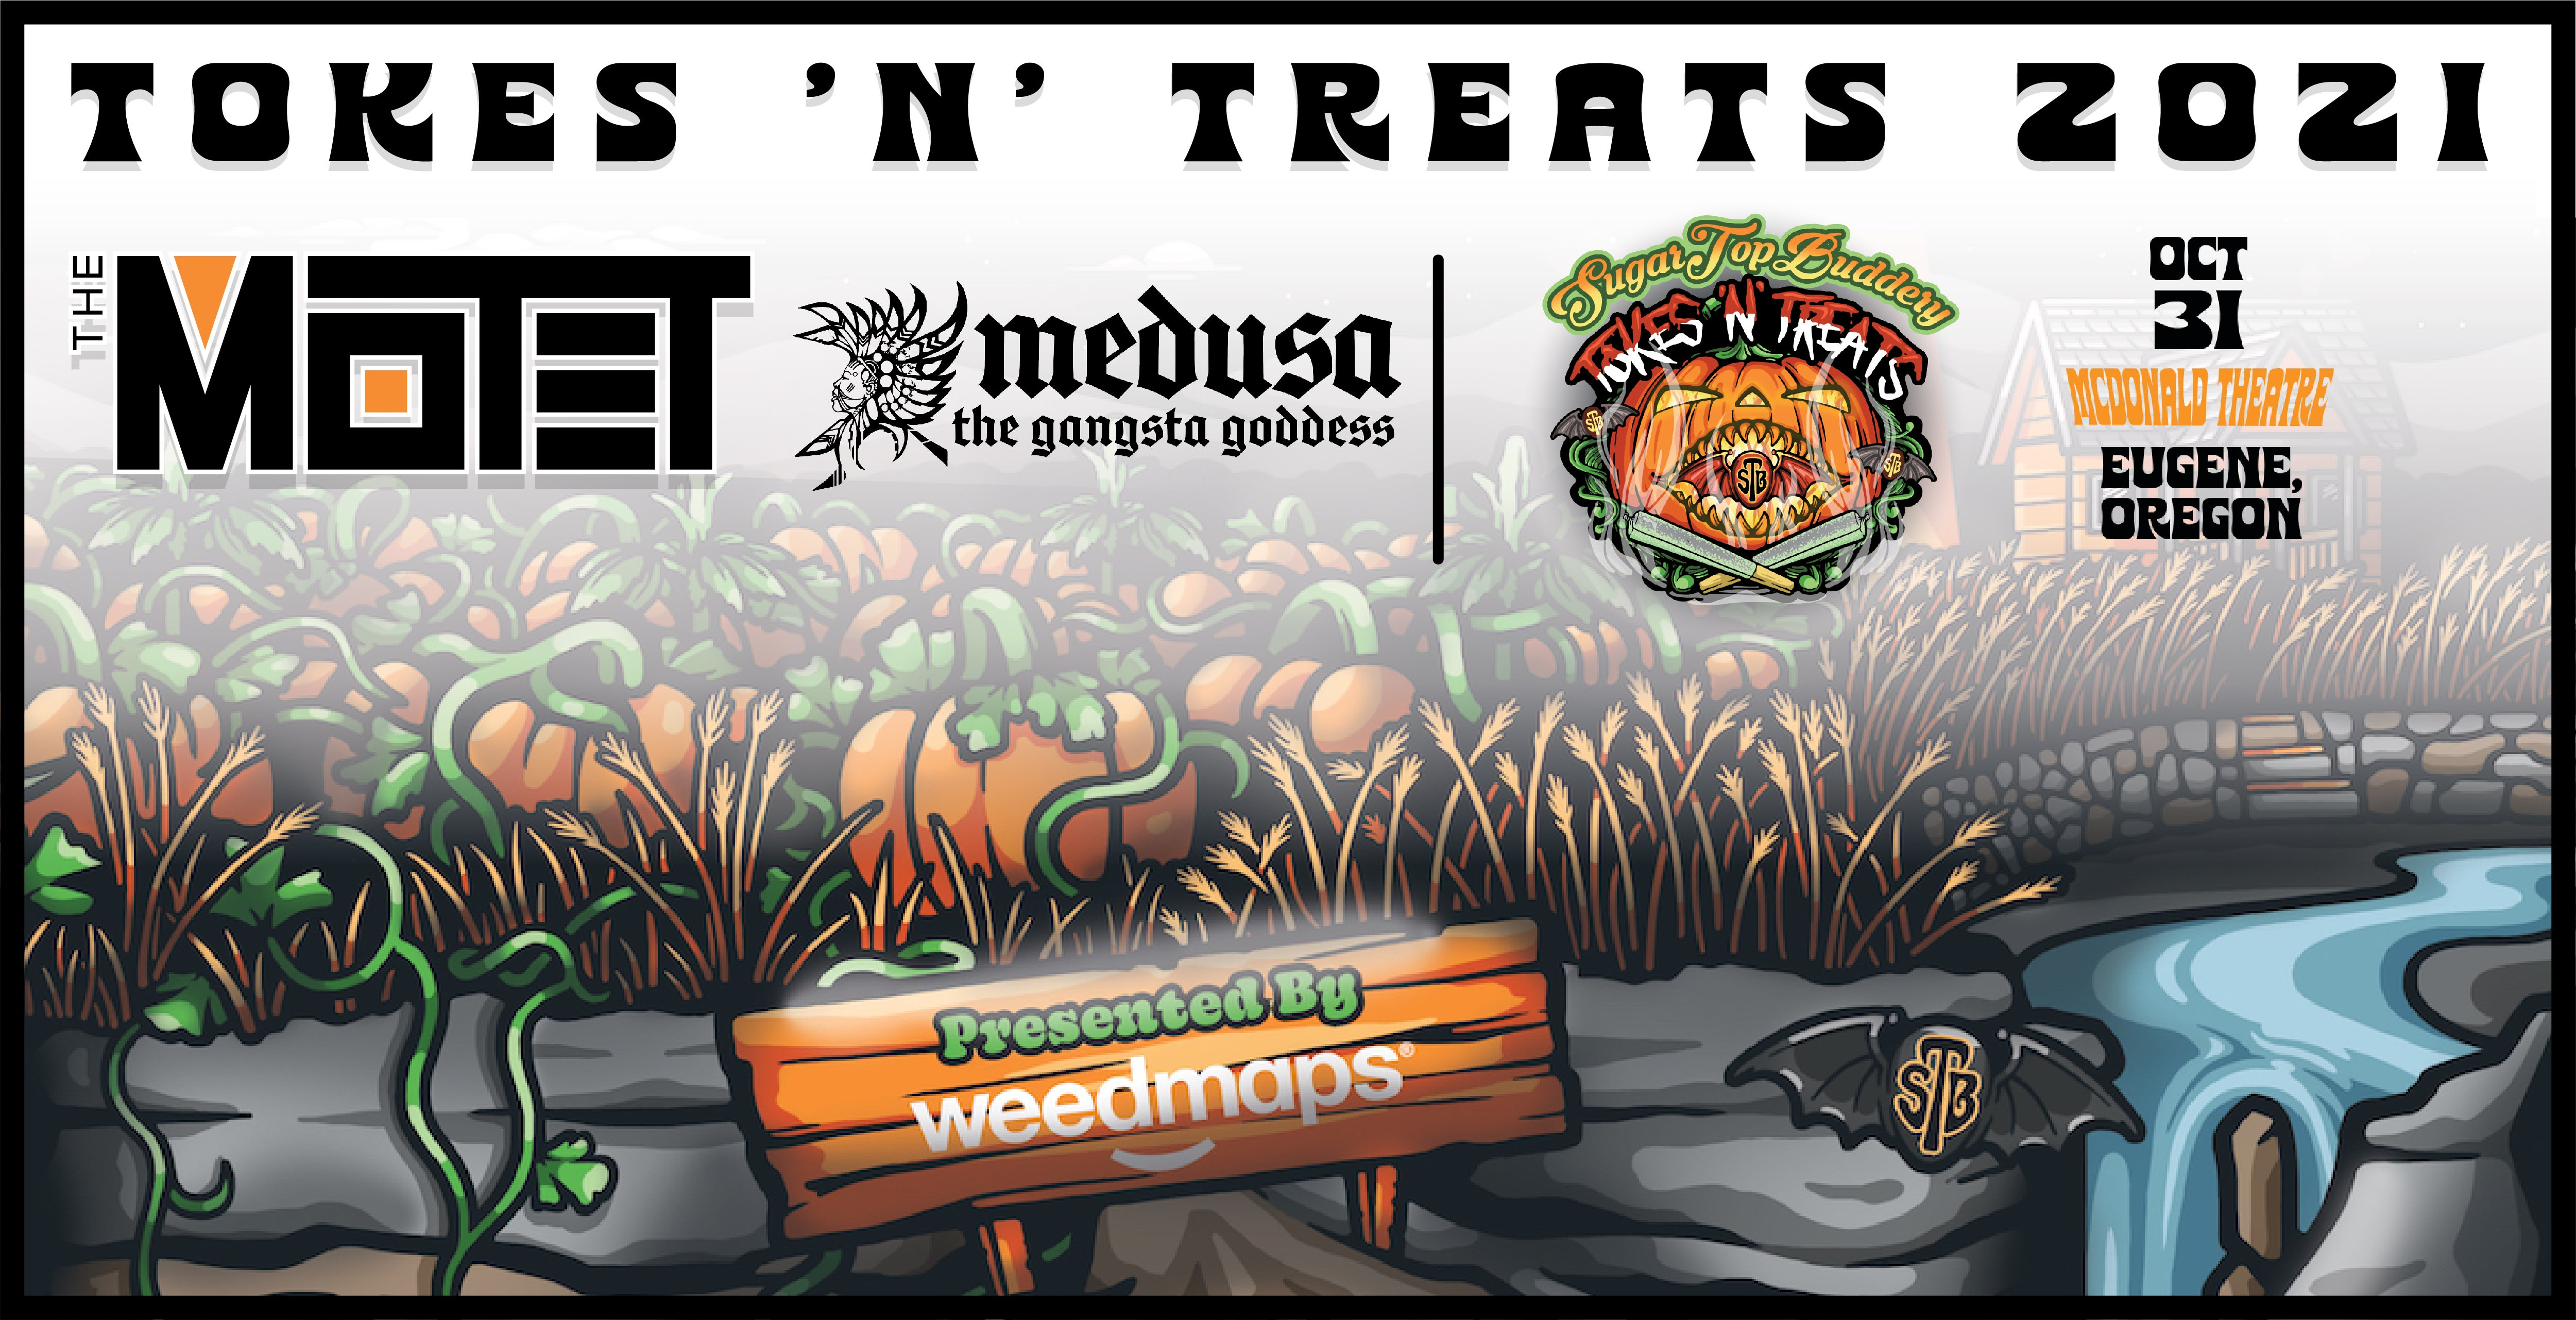 Tokes N' Treats featuring The Motet